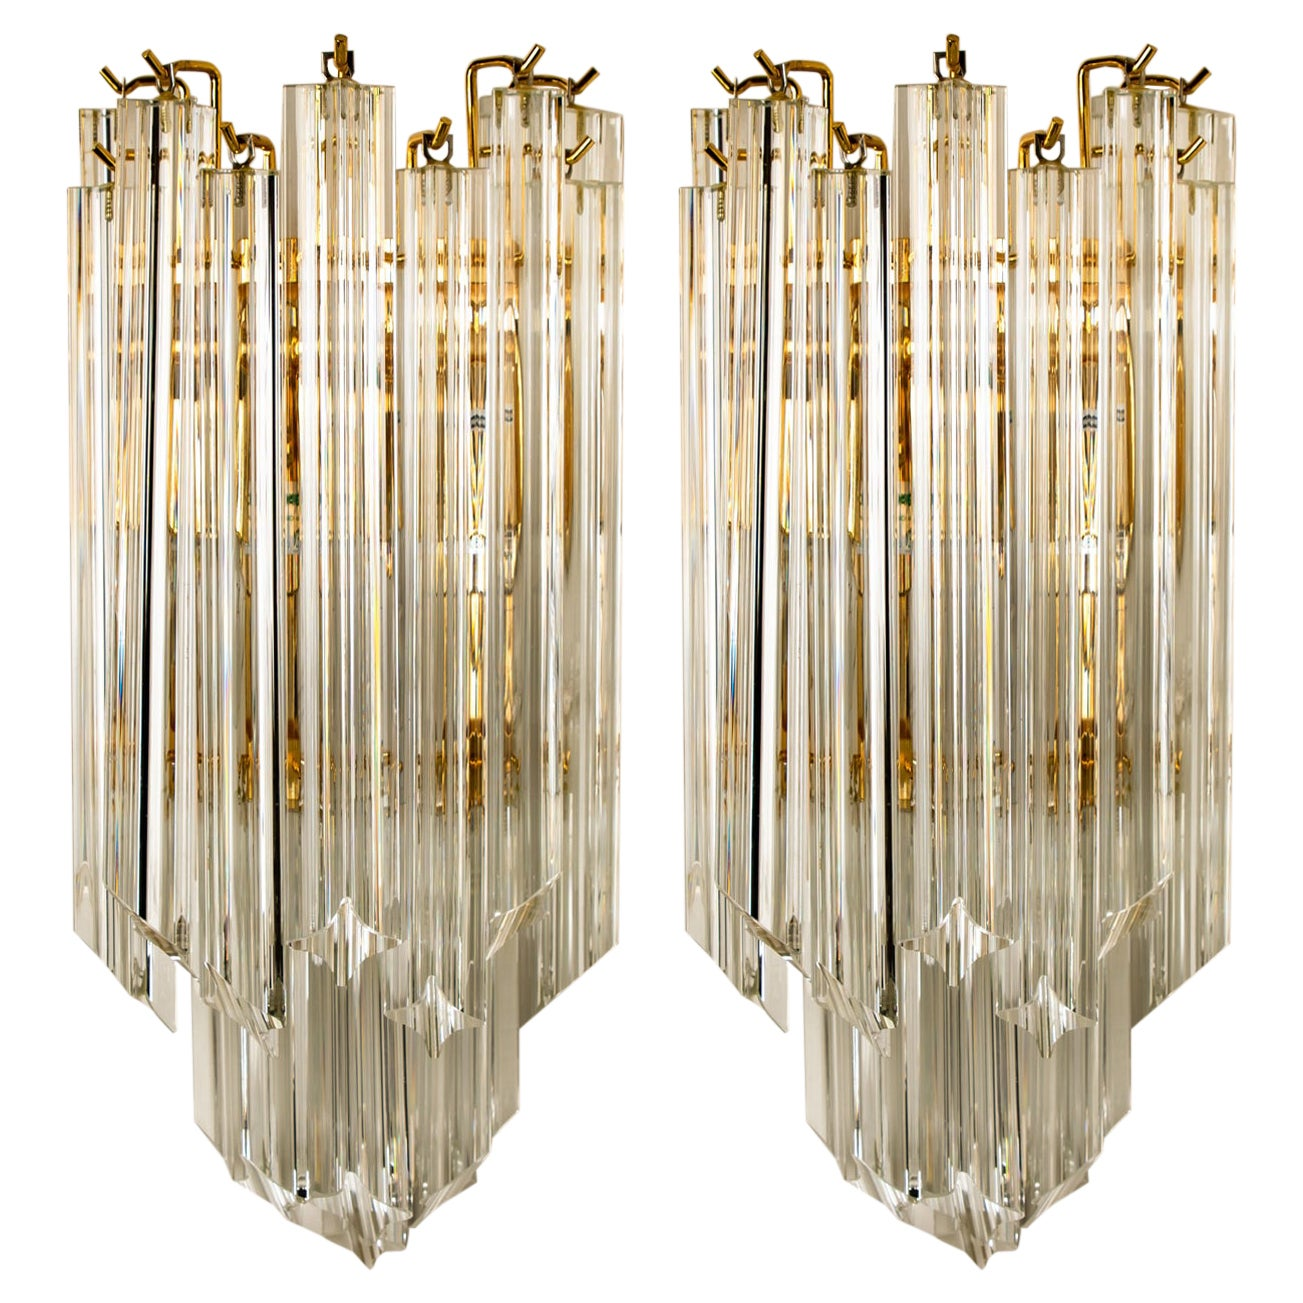 Pair of Venini Style Murano Glass and Gilt Brass Sconces, 1960s